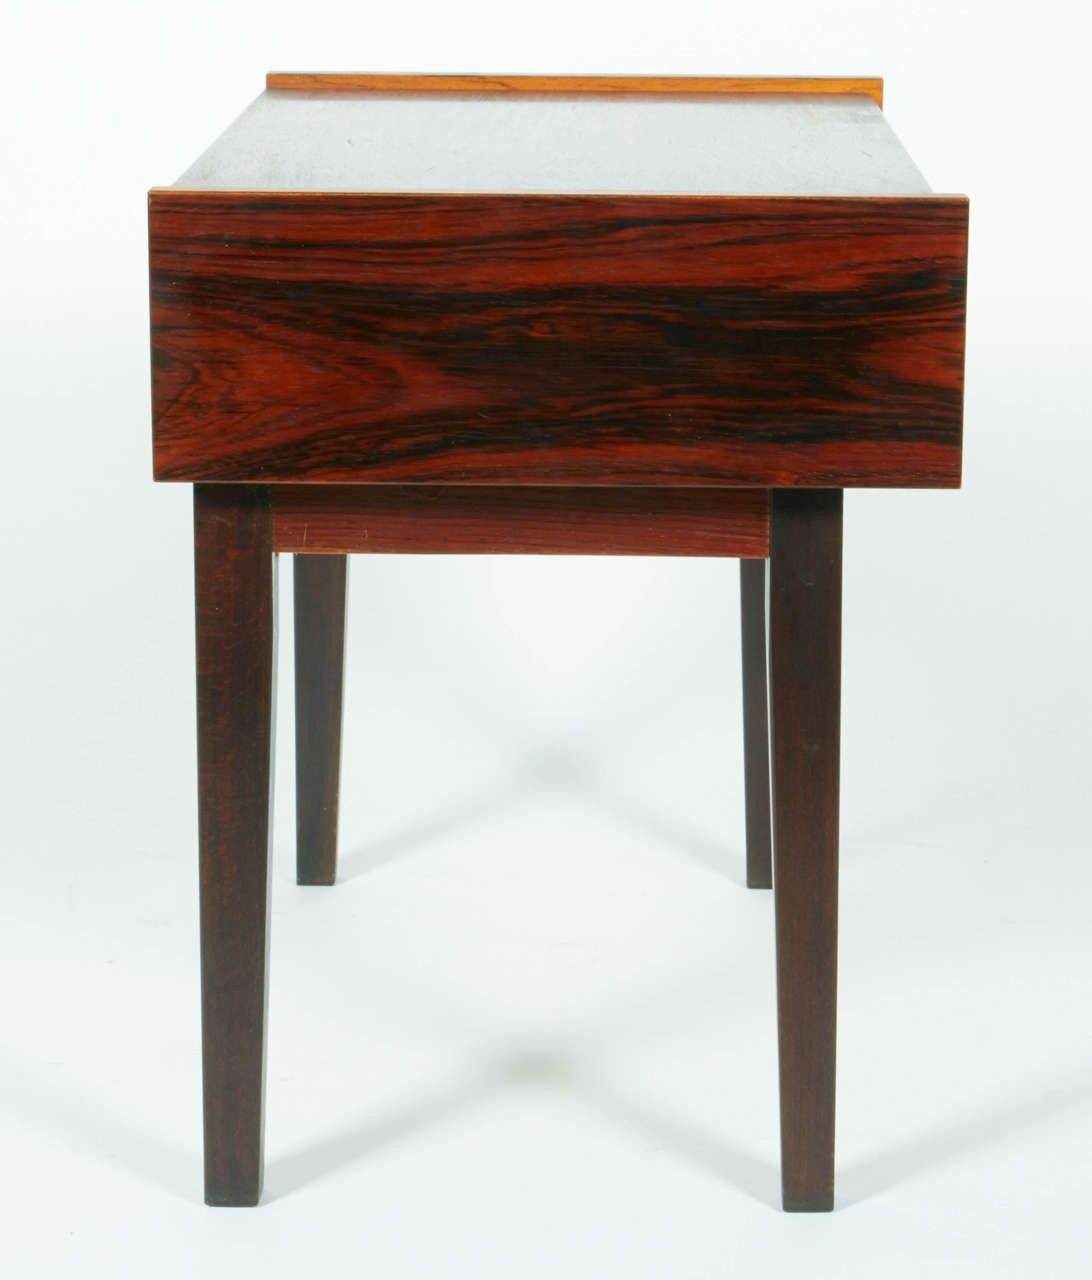 Small Mid-Century Scandinavian Side Table with Tile Drawer, Denmark, 1960s In Excellent Condition For Sale In New York, NY